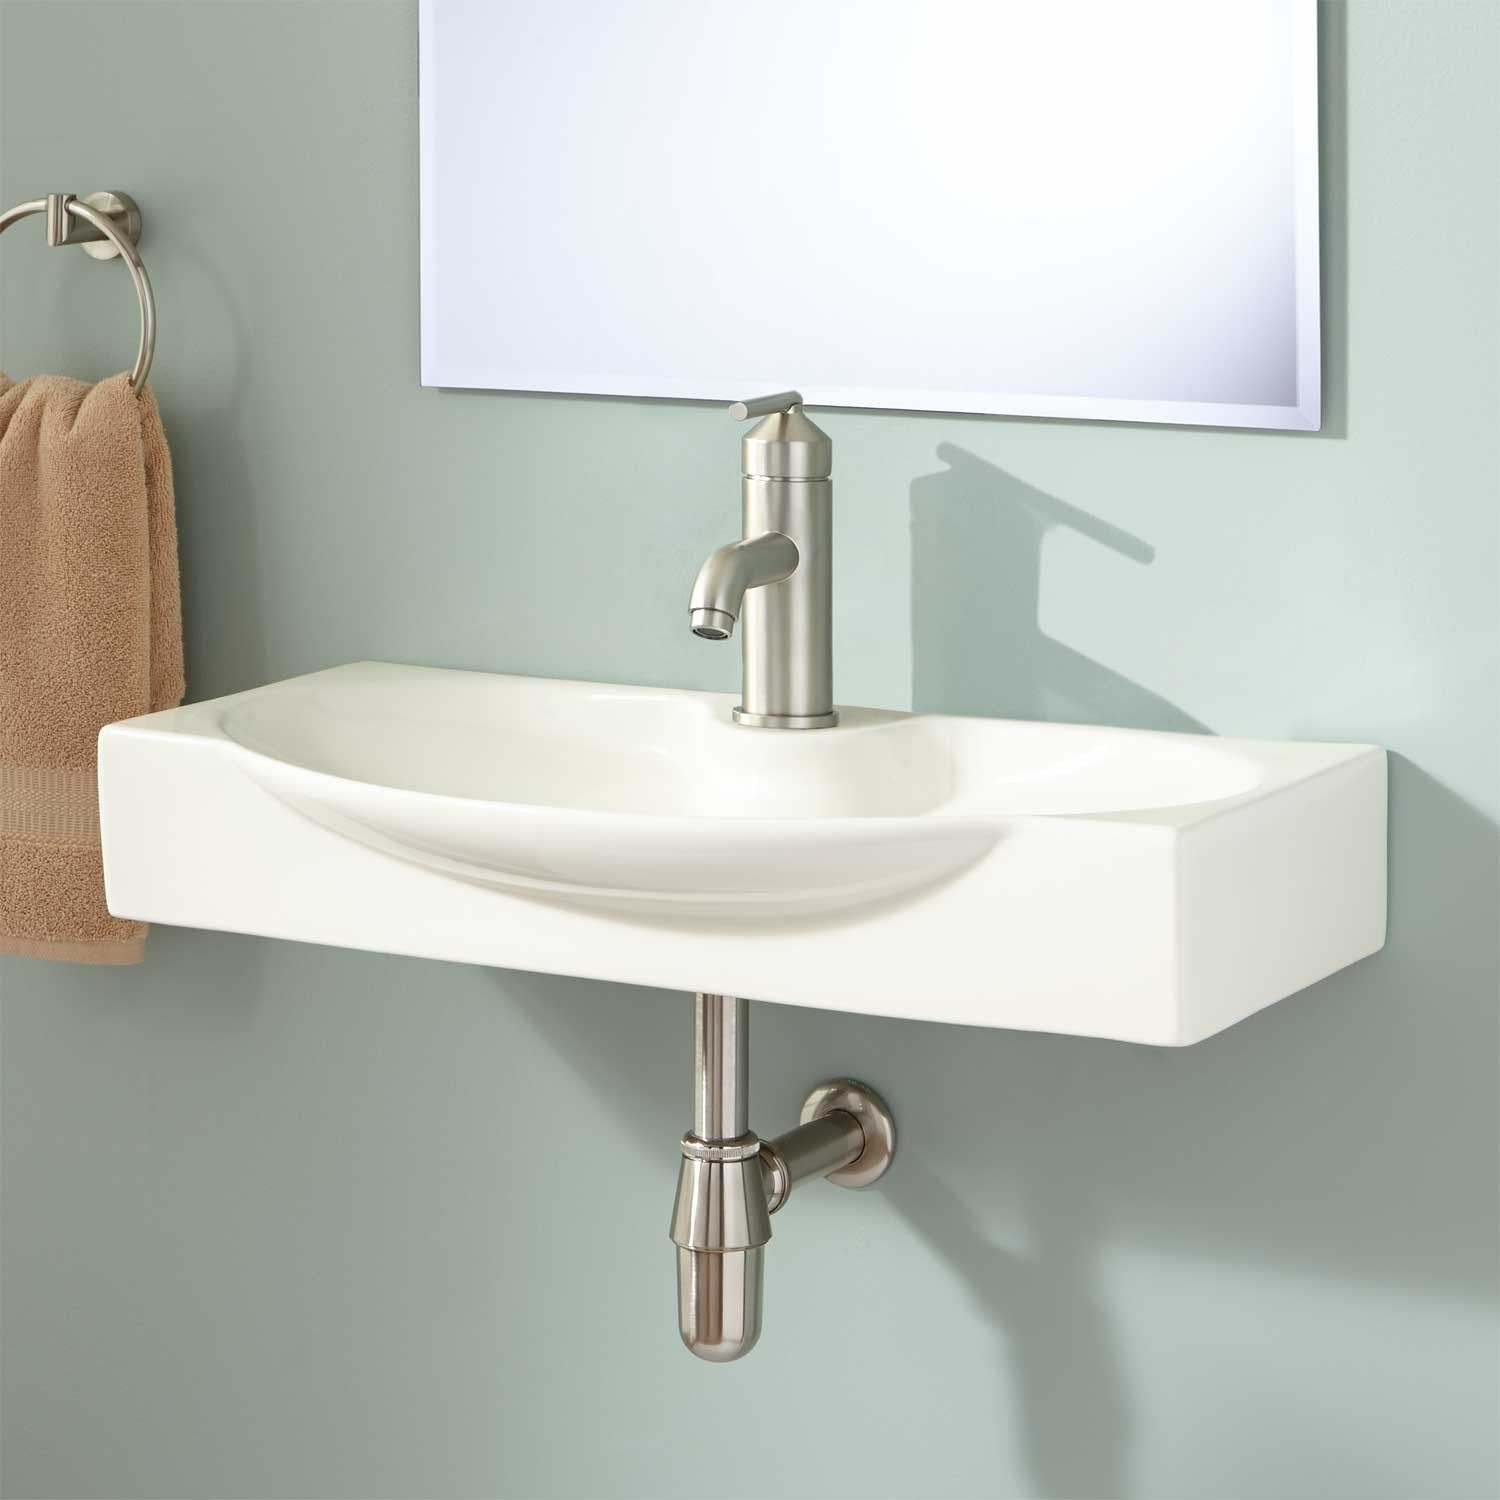 image result for european bathroom sinks wall mounted on wall mount id=73616